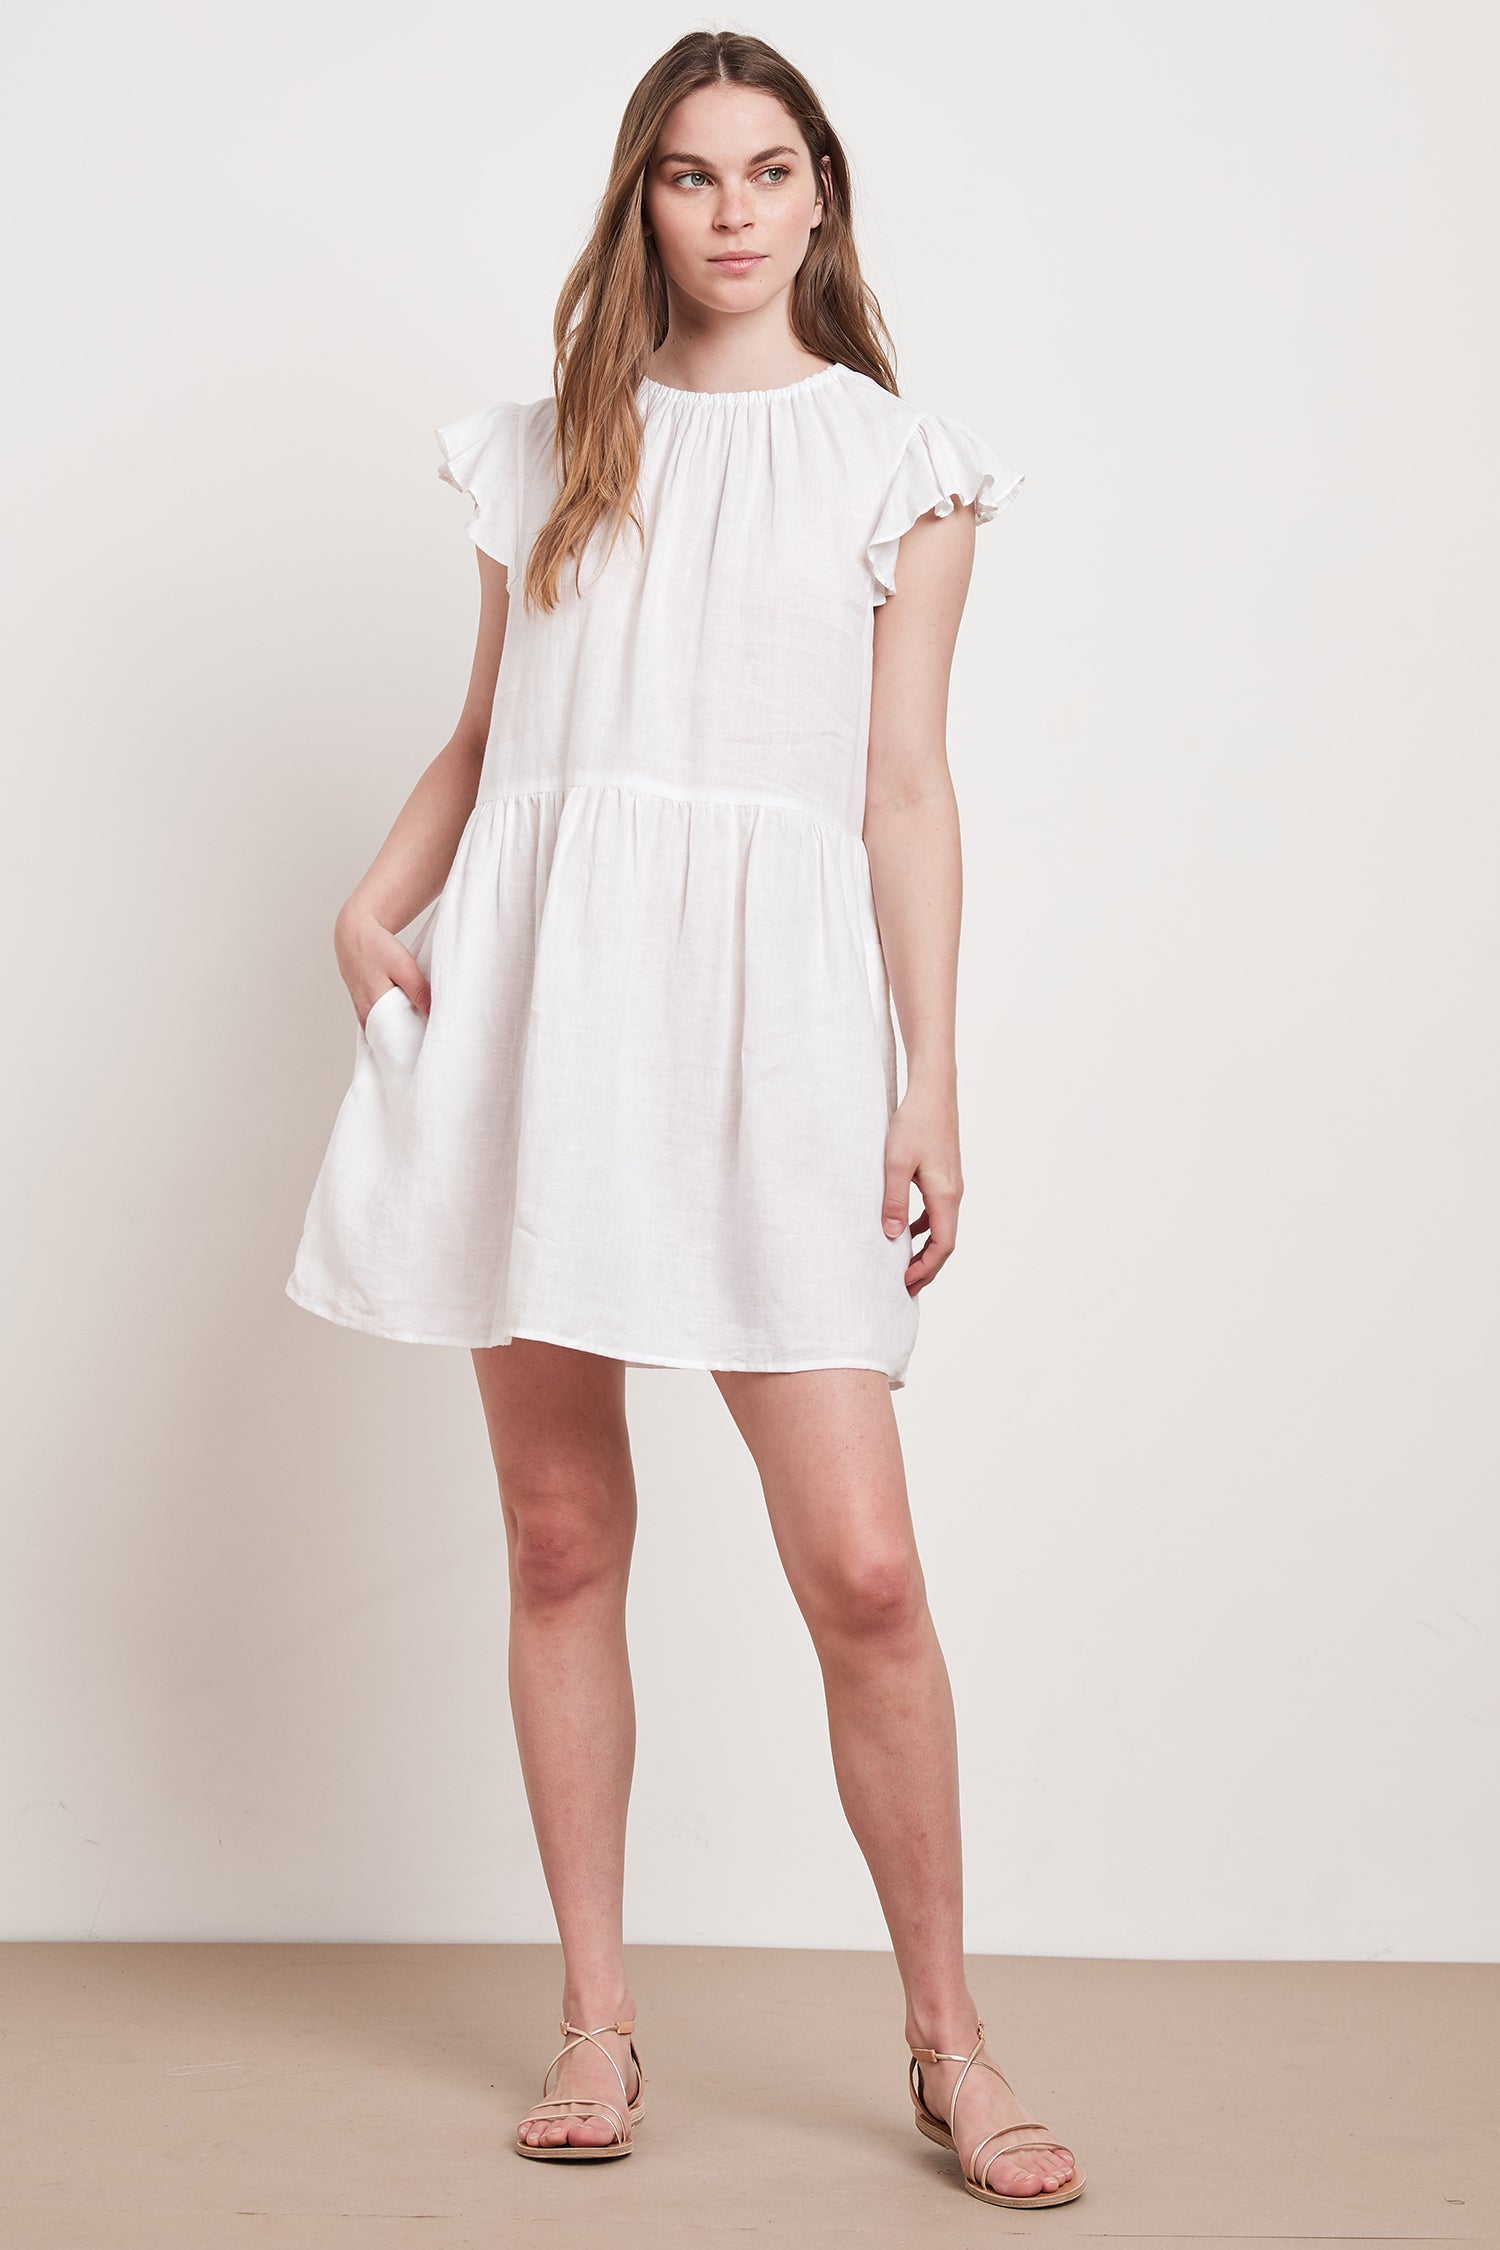 EVONNE WOVEN LINEN DRESS IN WHITE